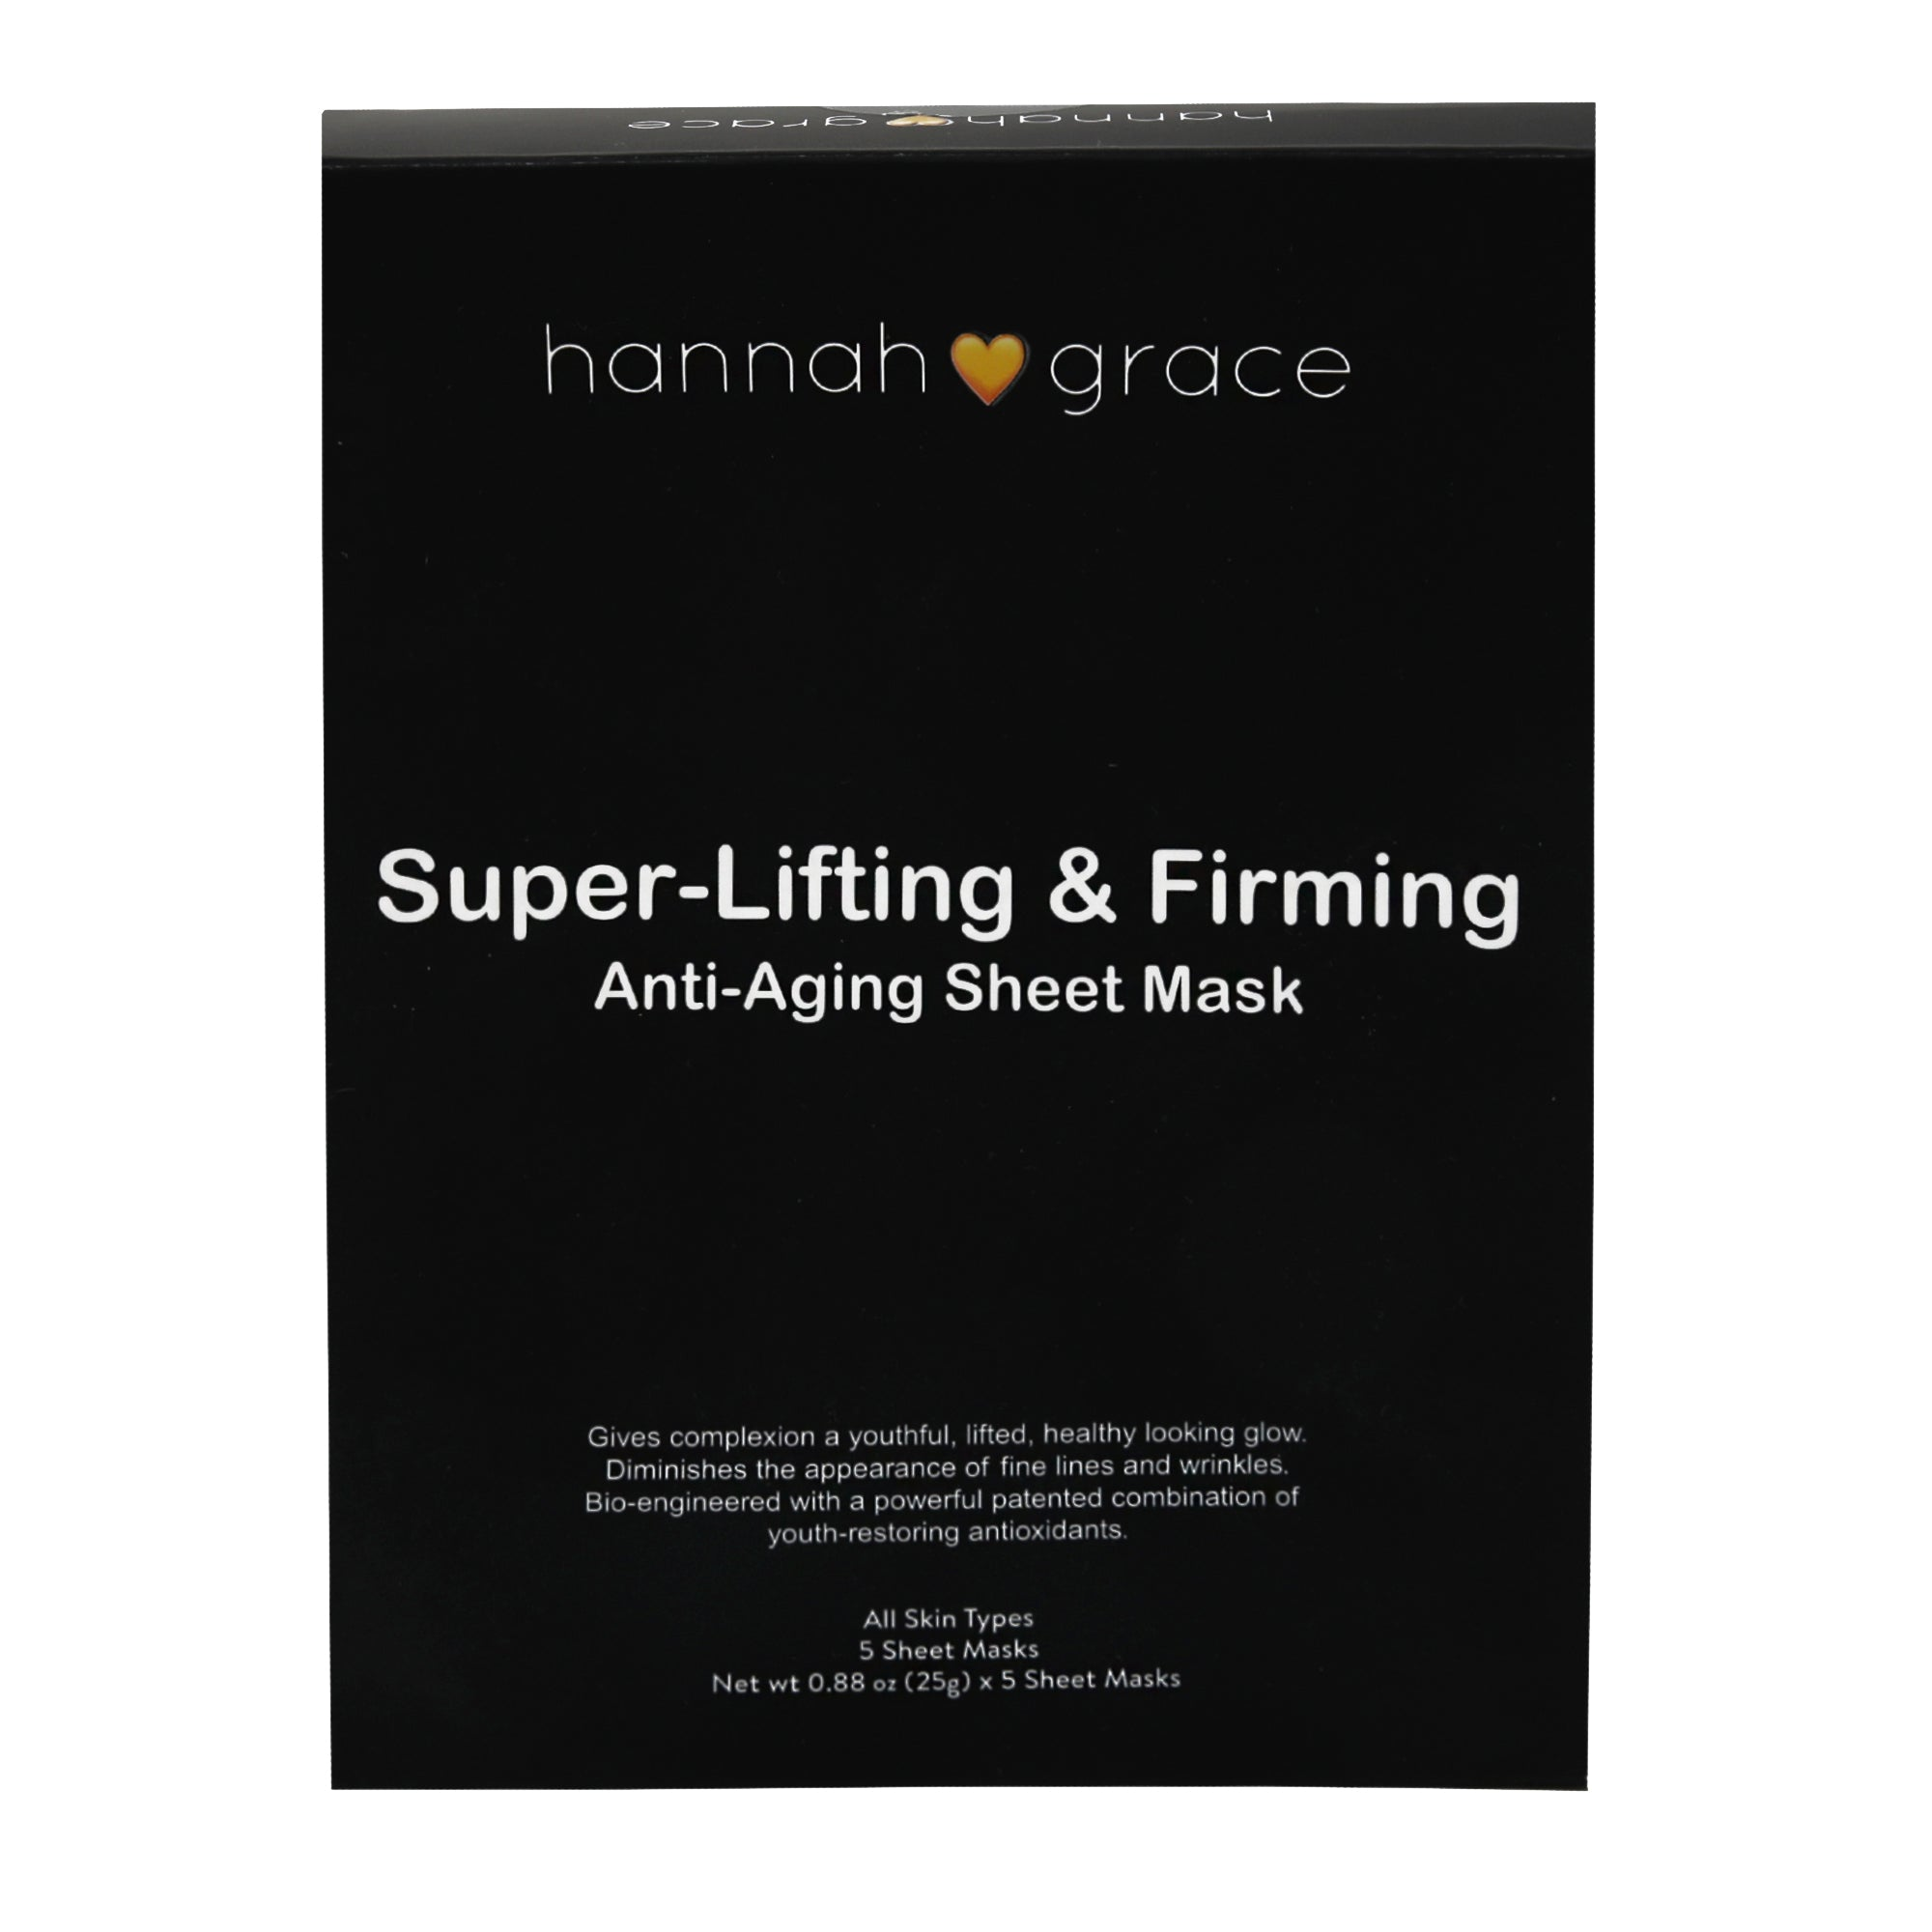 Super-Lifting and Firming Mask - Visibly diminishes lines and wrinkles - 5 pack